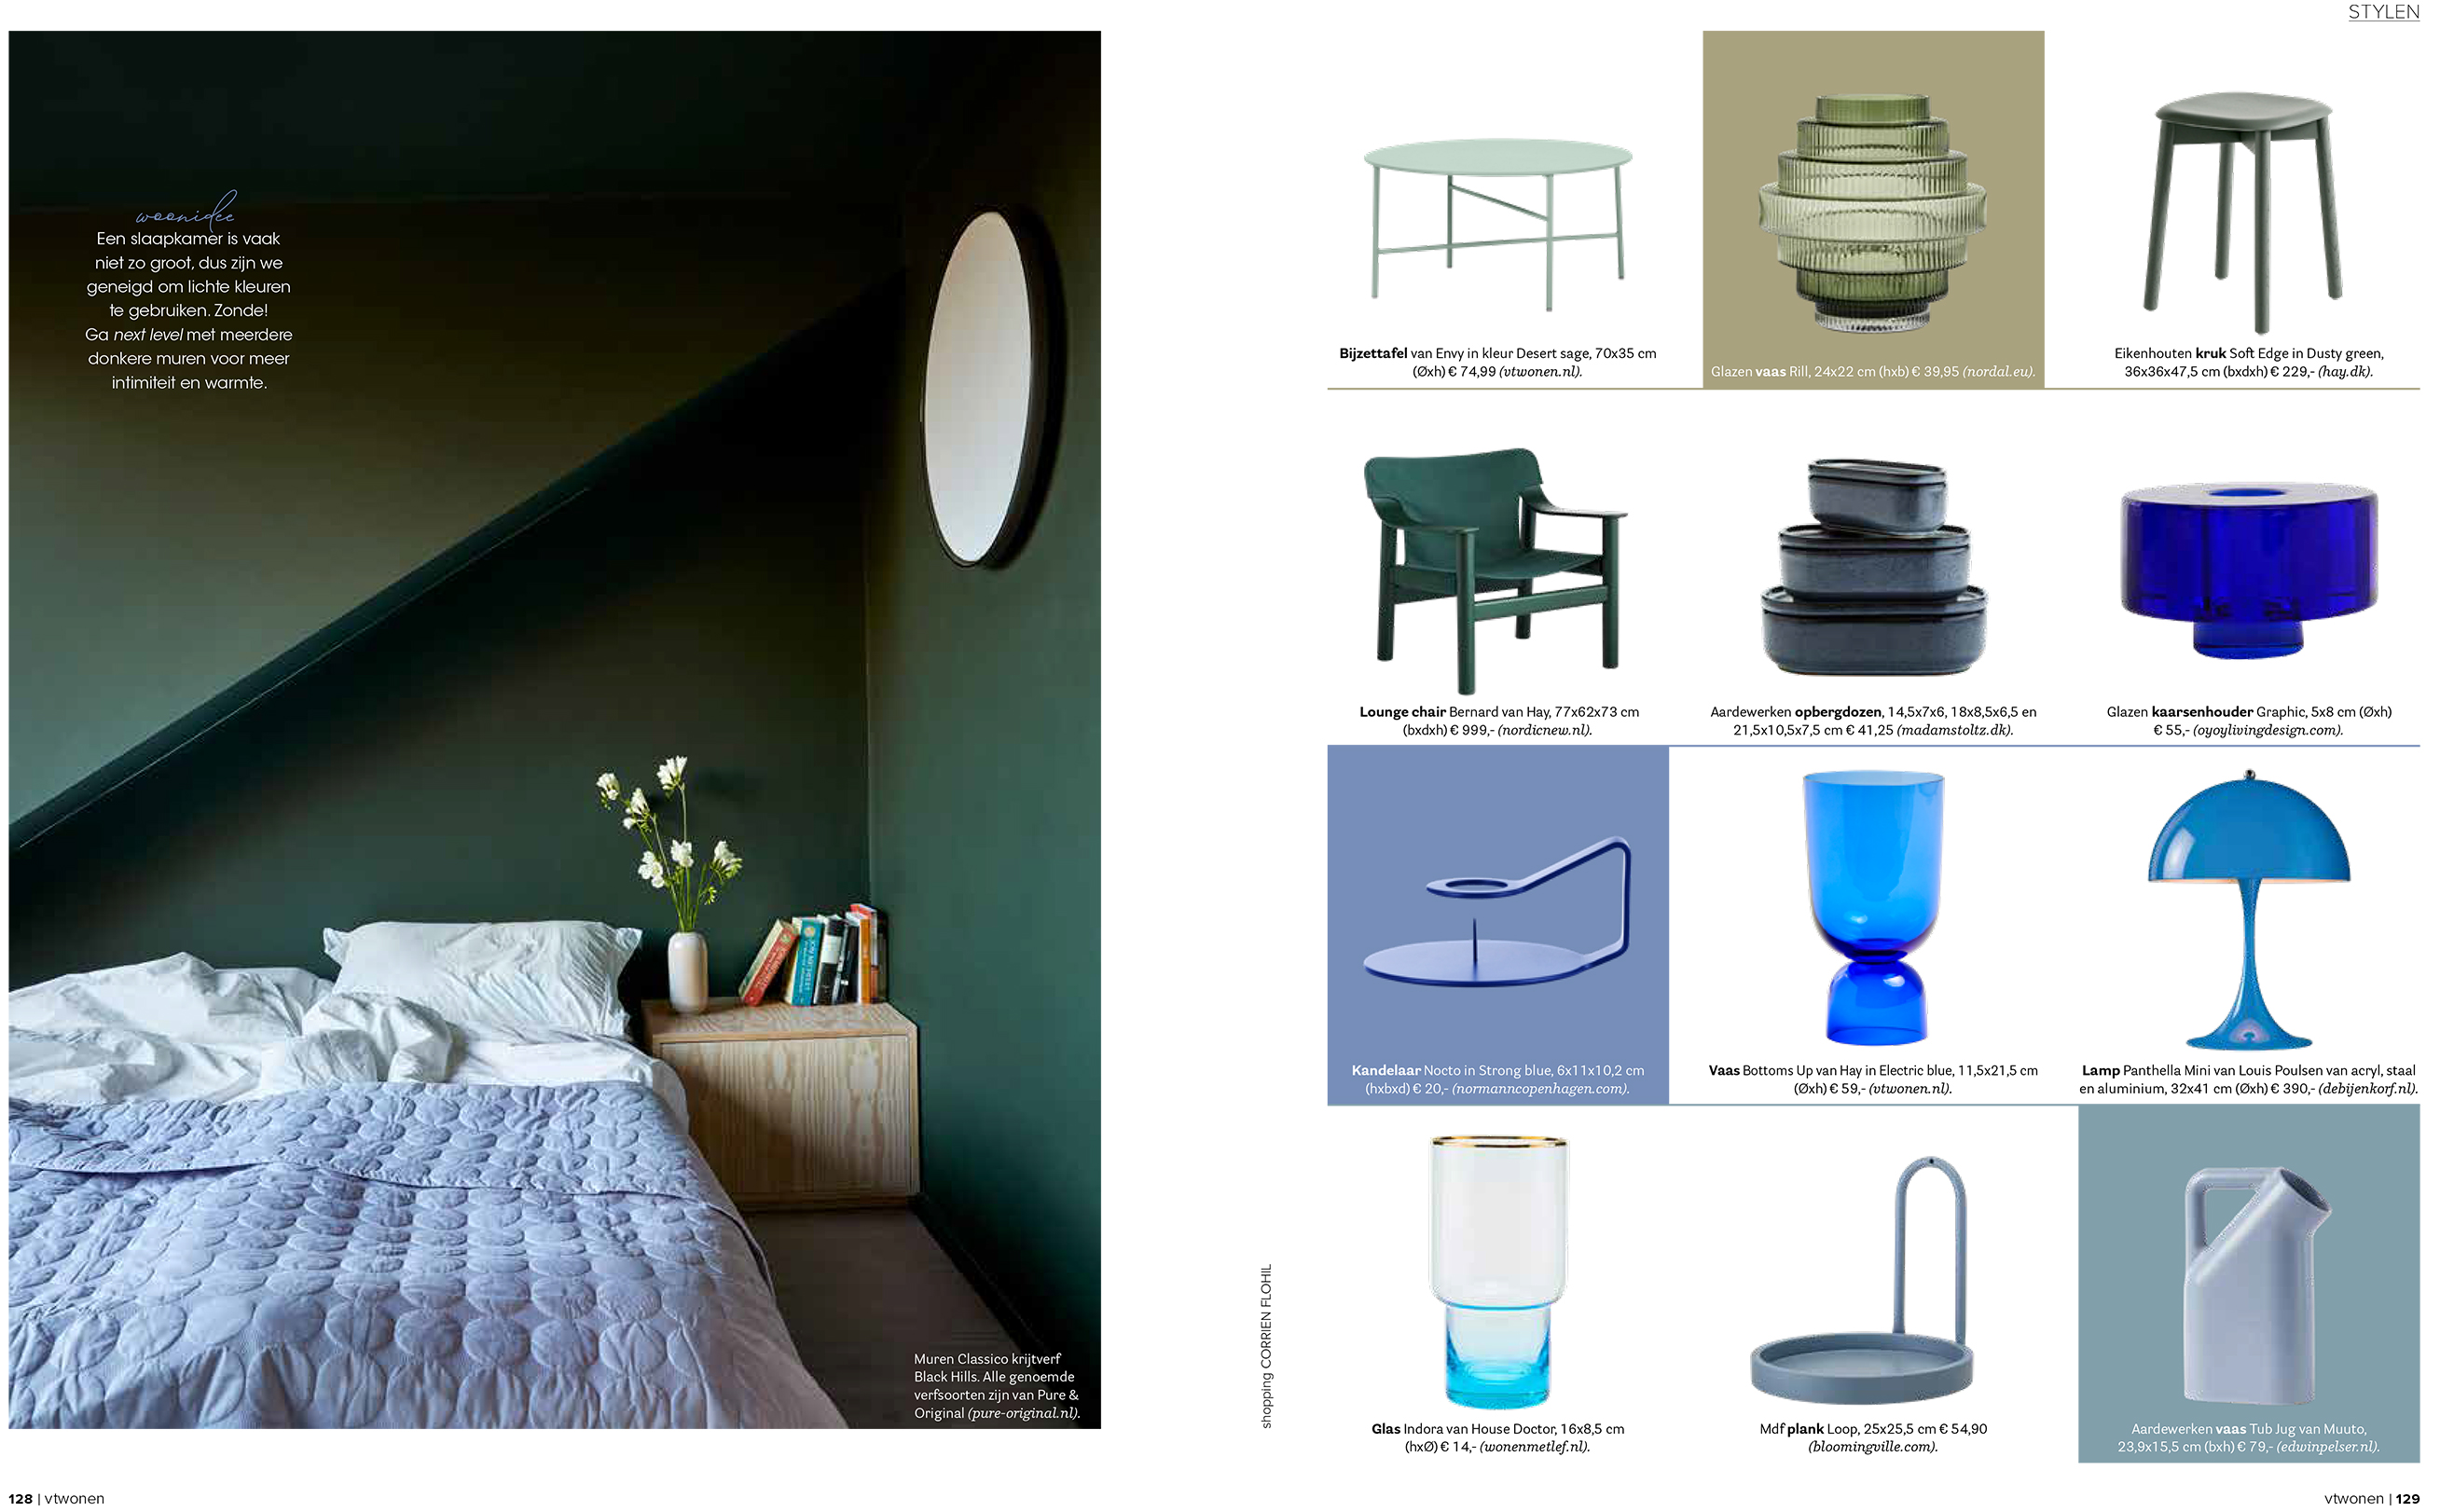 Pure & Original in vtwonen ed5 2020 met colour collection upside down